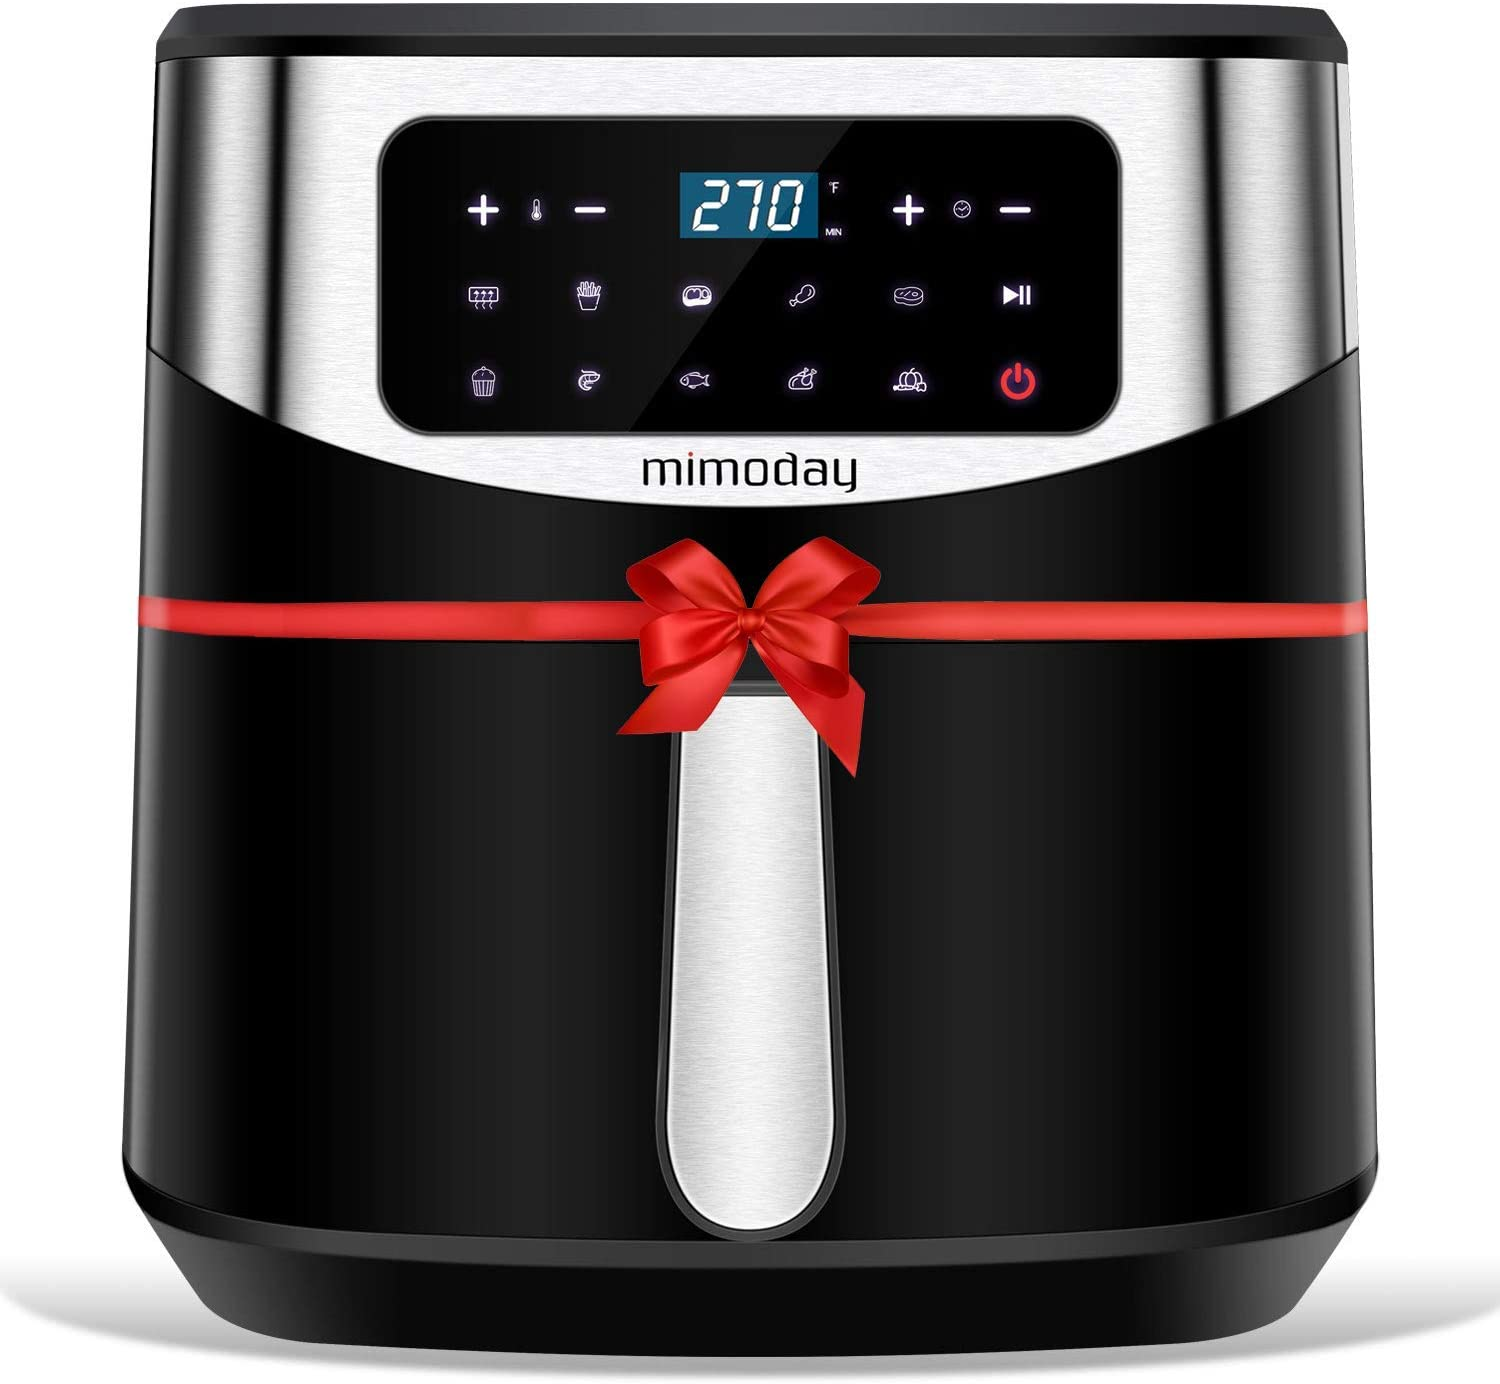 MIMODAY 9-in-1 Electric Air Fryers